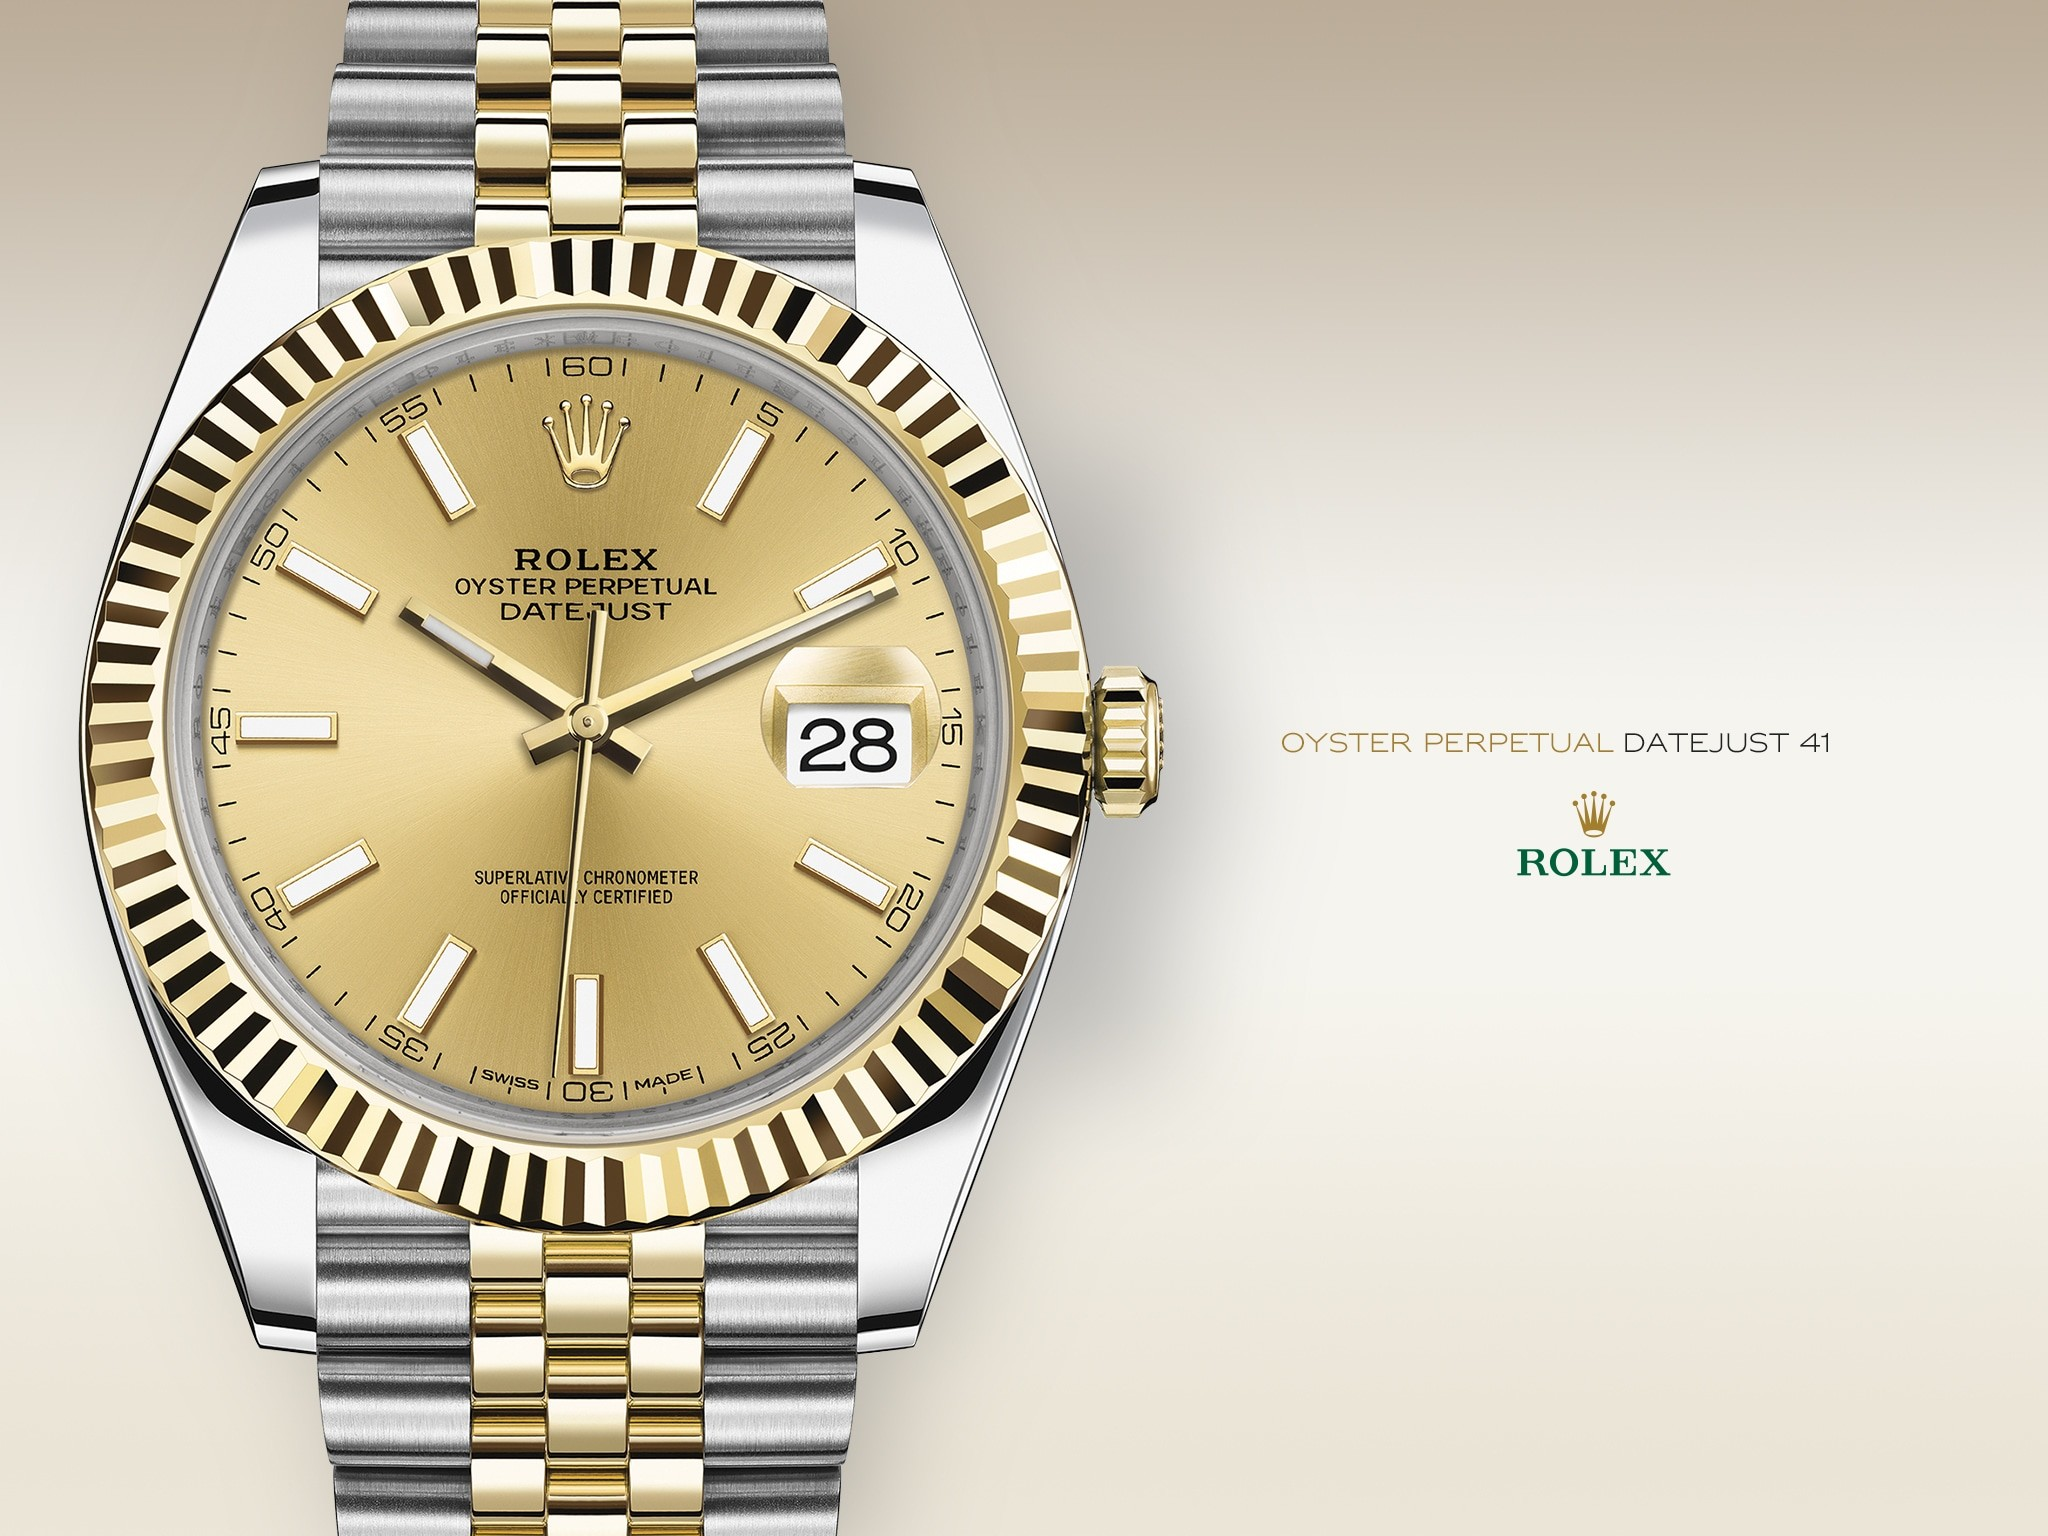 Res: 2048x1536, Rolex wallpapers